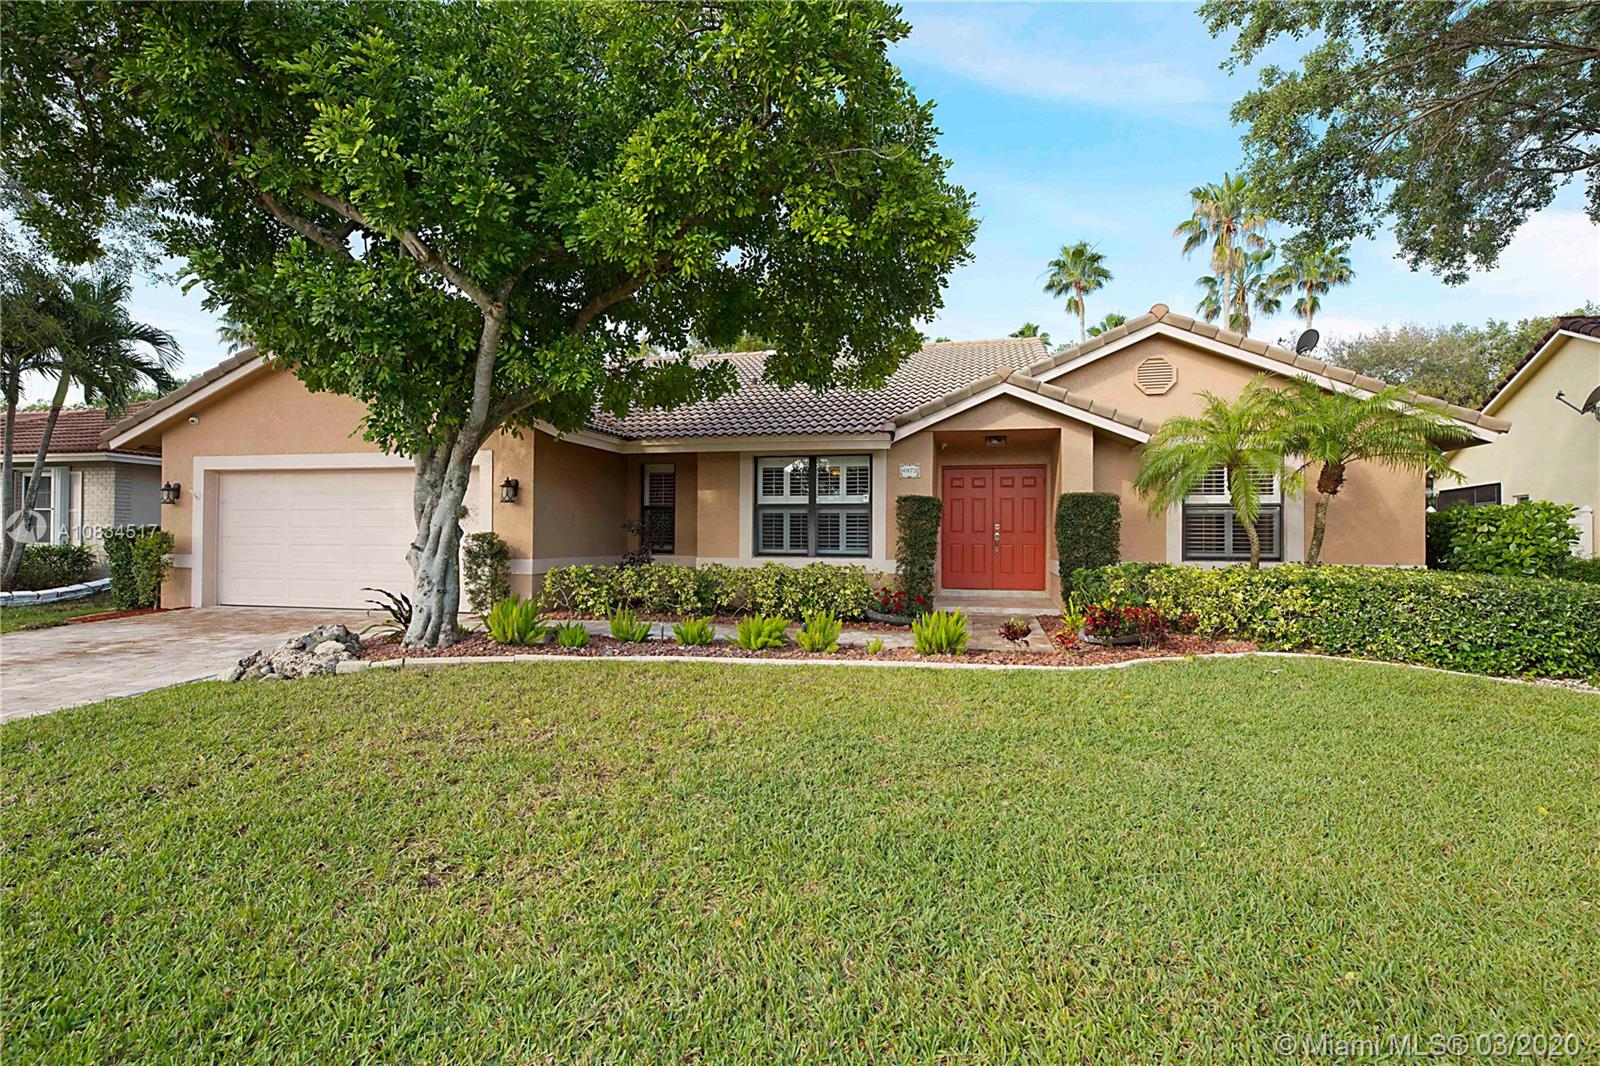 4972 NW 105th Dr, Coral Springs, FL 33076 - Coral Springs, FL real estate listing